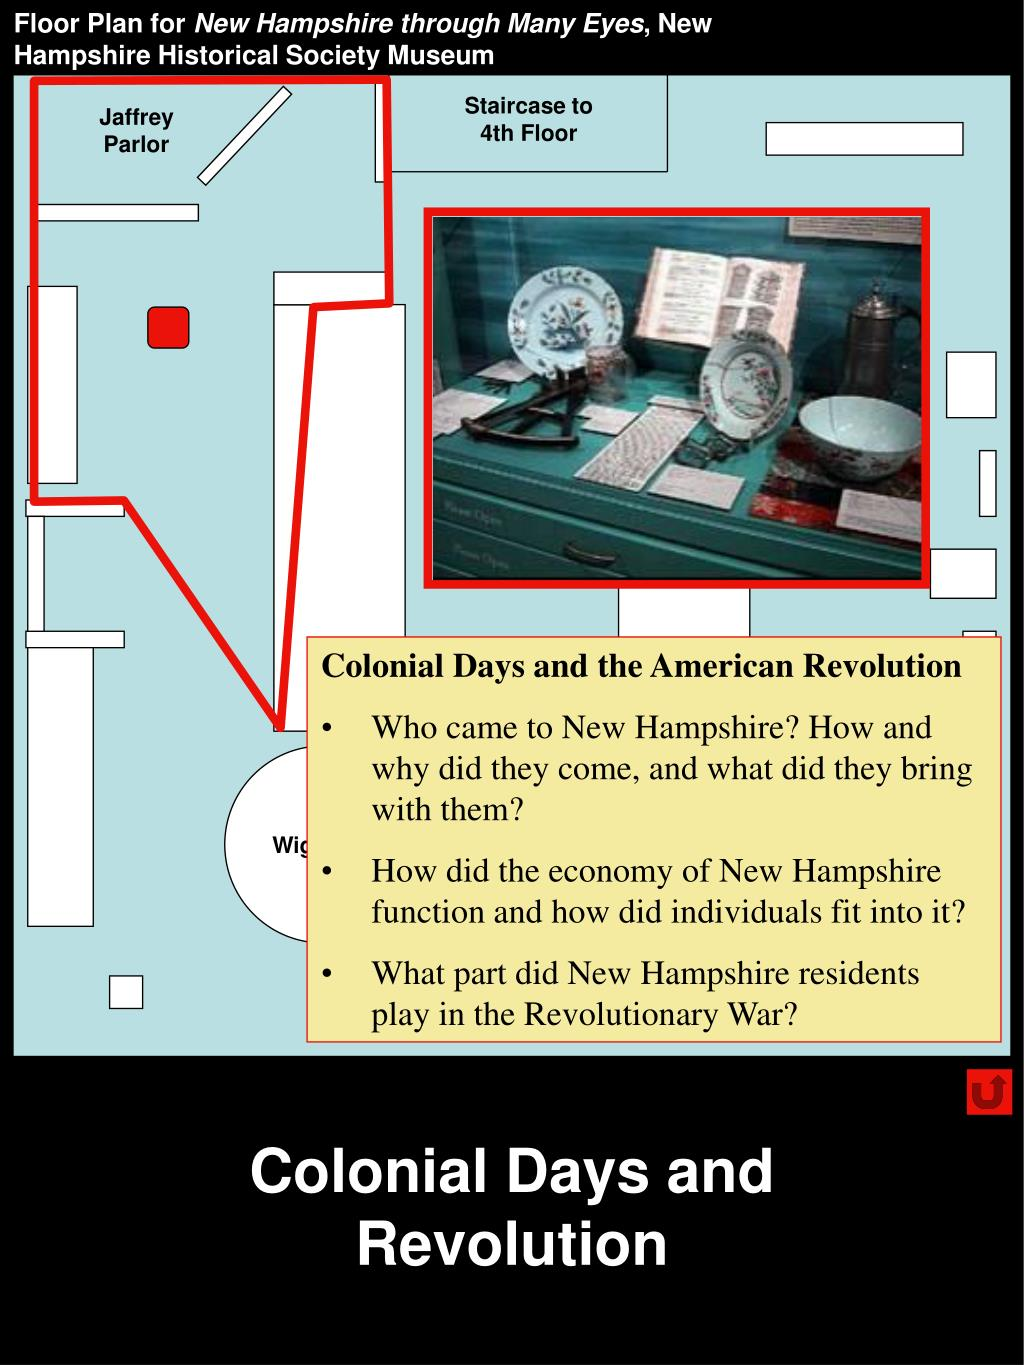 Colonial Days and Revolution